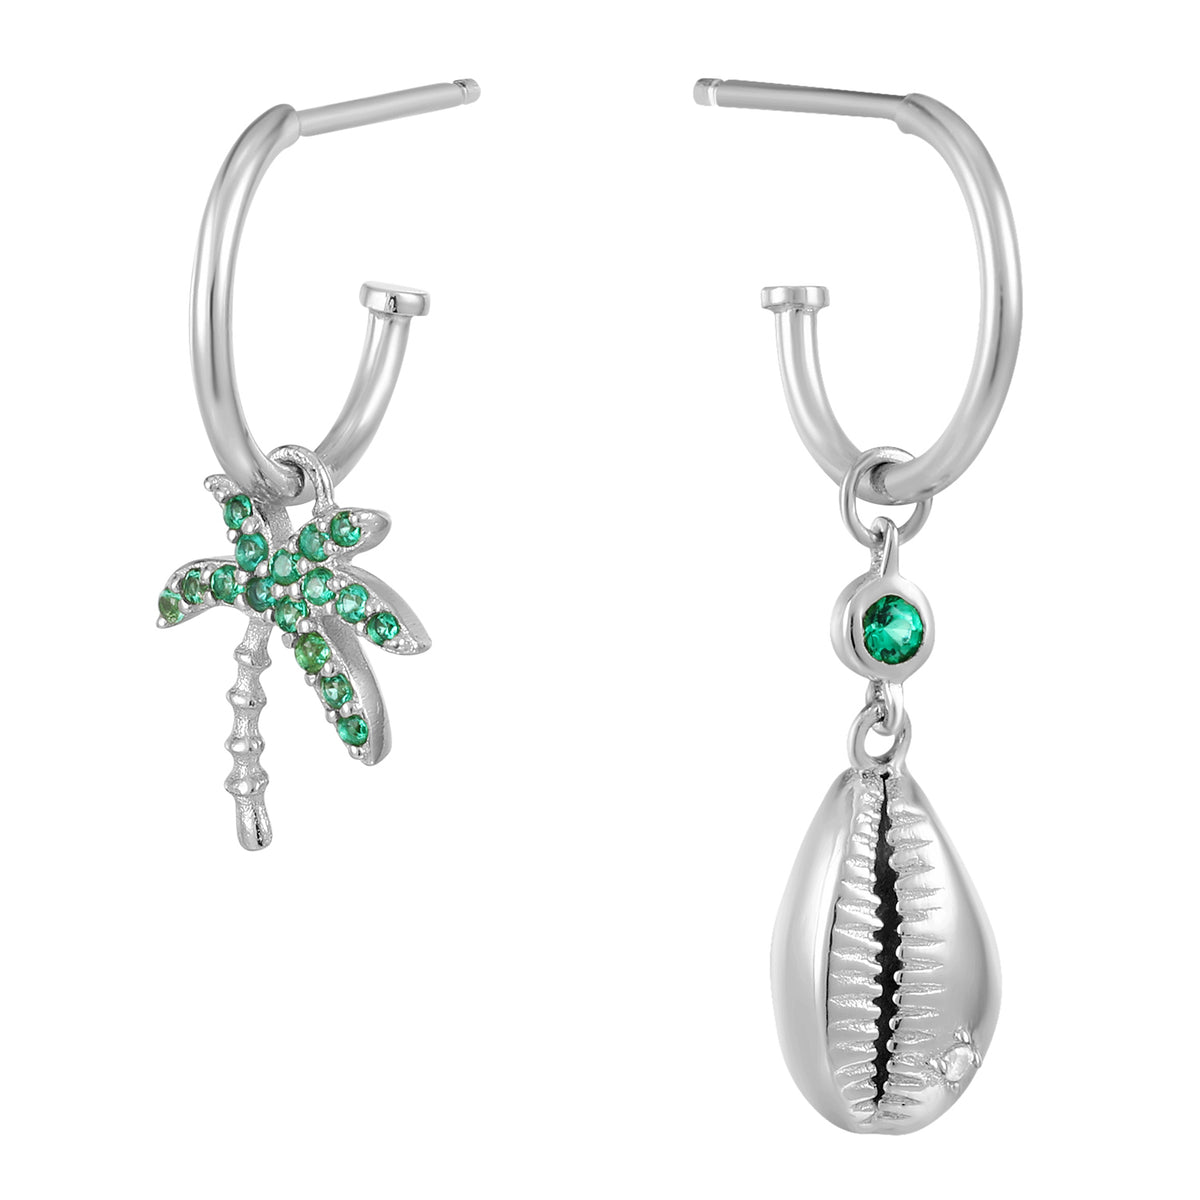 Carmenta | Hawai Earrings | 925 Silver | Green CZ | White Rhodium Plated